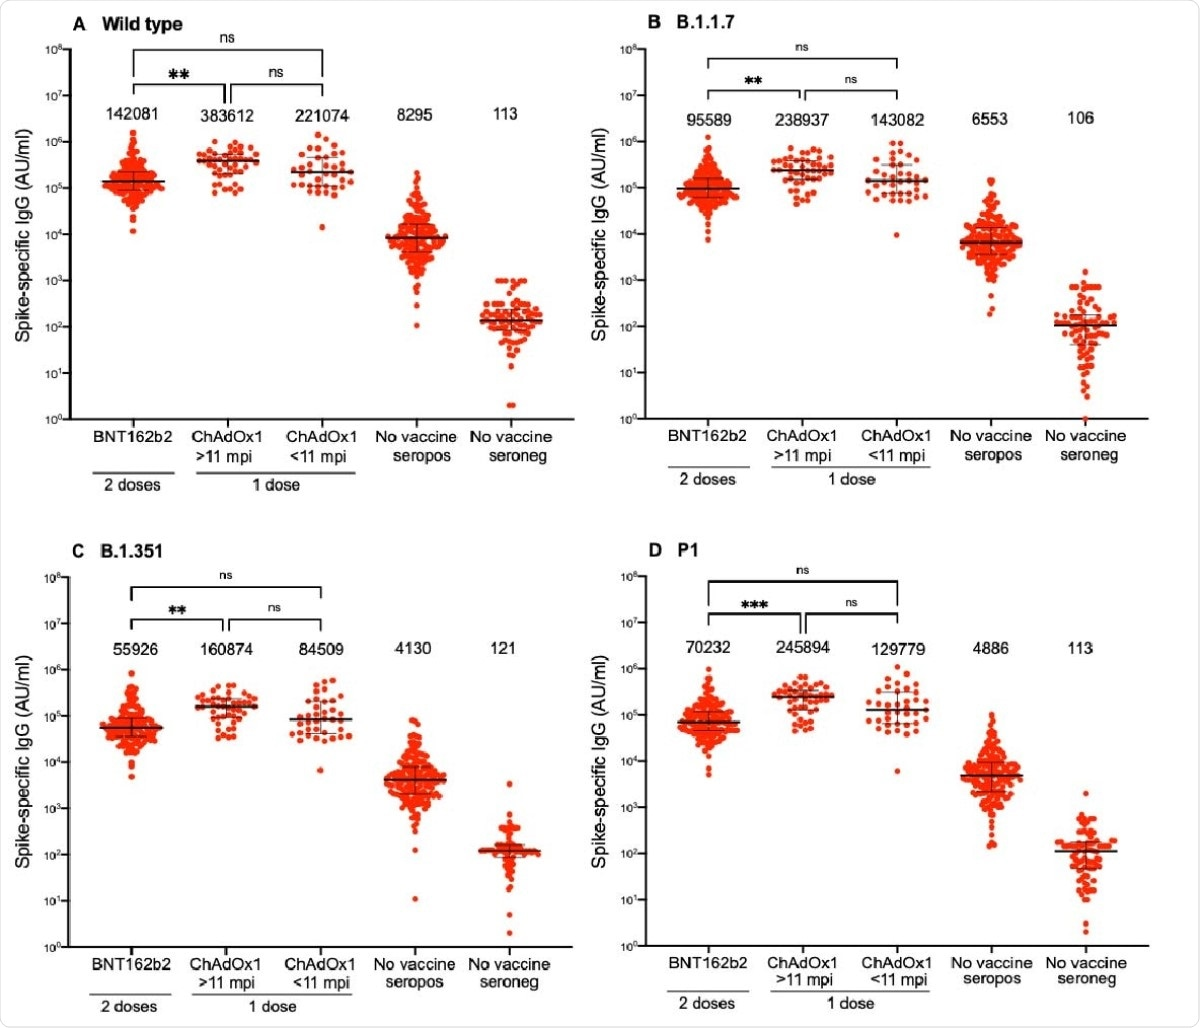 Spike-specific IgG responses against SARS-CoV-2 wild type and variants following two doses BNT162b2 in individuals with or without previous SARS-CoV-2 infection or one dose ChAdOx1 nCoV-19 vaccine in individuals with previous SARS-CoV-2 infection. A) Spike-specific IgG responses against wild type (A), B.1.1.7 (B), B.1.351 (C) and P1 (D). Numbers above each cluster indicate median AU/ml. Lines indicate medians with interquartile ranges. AU; arbitrary units, mpi; months post infection, ns; non-significant, *; p<0.05, **; p<0,01 ***; p<0.001, ****; p<0.0001.